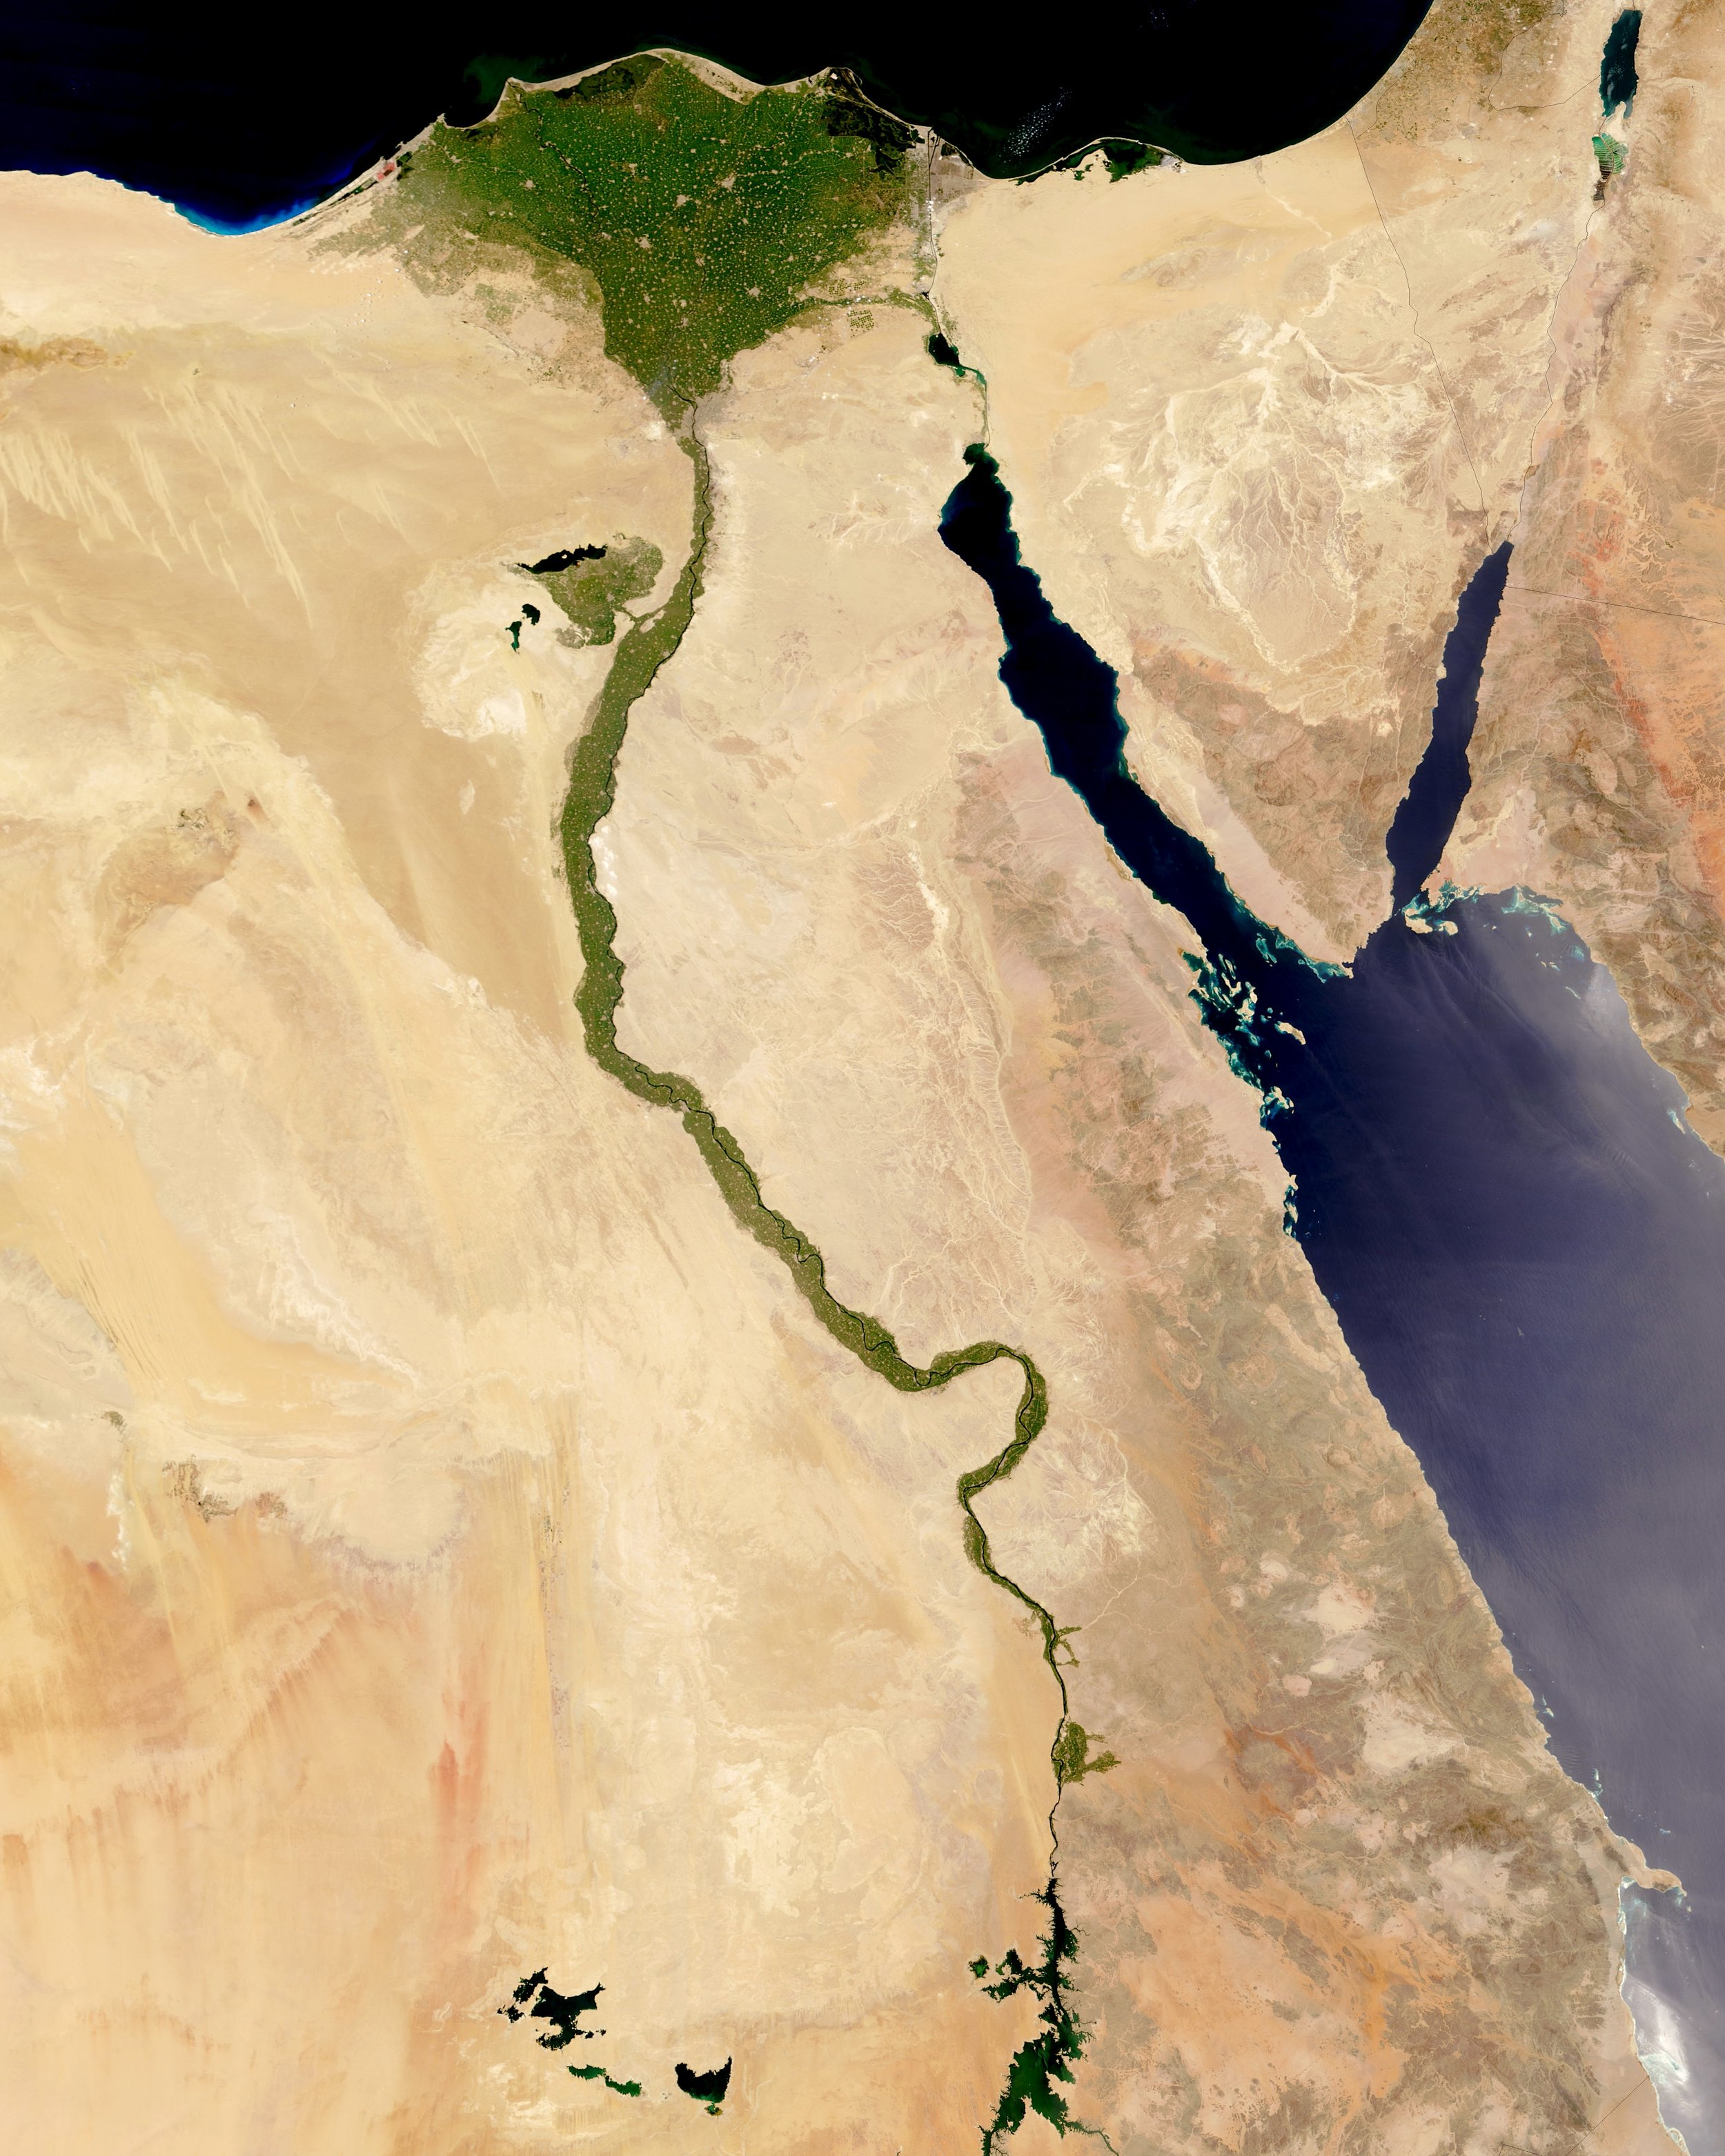 "The Nile River is commonly regarded as the longest river in the world, flowing for 4,258 miles (6,853 km) over 11 countries in northeastern Africa. In this Overview, it is shown flowing north through Egypt, forming a large triangular delta before emptying into the Mediterranean Sea. Civilizations since ancient times have depended on the waters of the Nile to flood and fertilize surrounding desert lands.  29°20'11.0""N, 31°13'28.8""E  Source imagery: NASA - National Aeronautics and Space Administration"